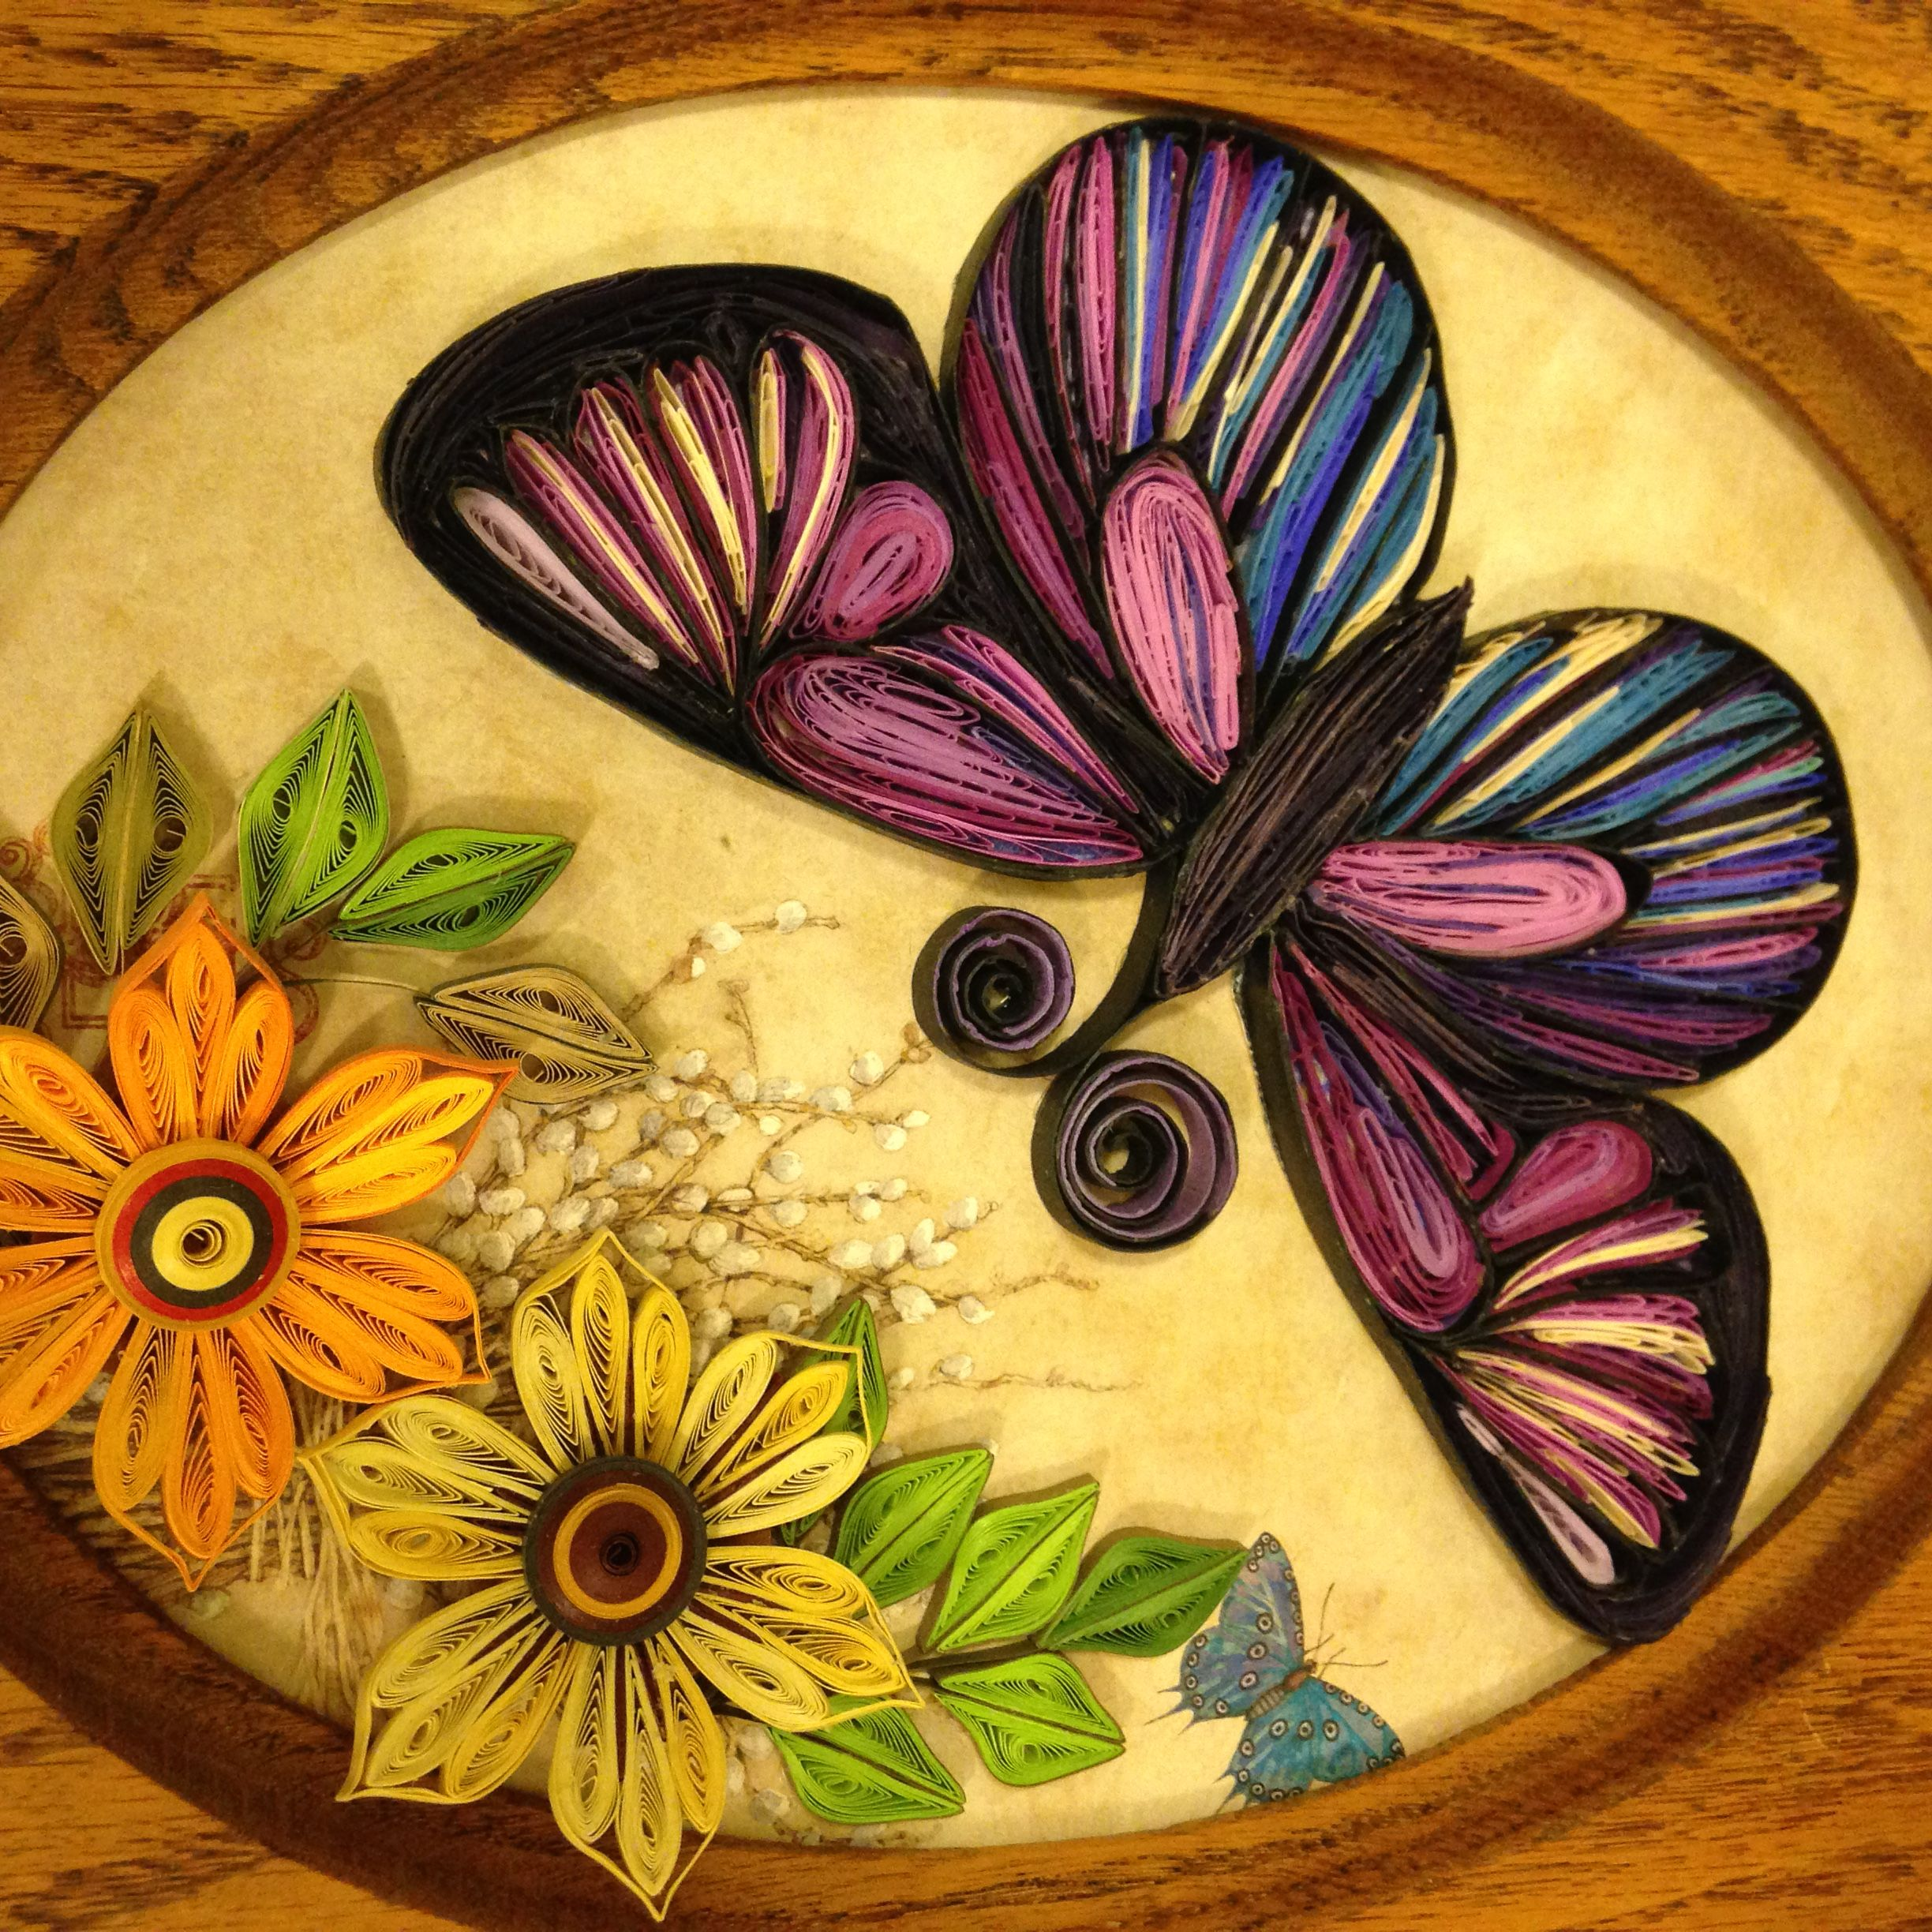 Pin by Tasneem Lokhandwala on quilling | Pinterest | Quilling and ...